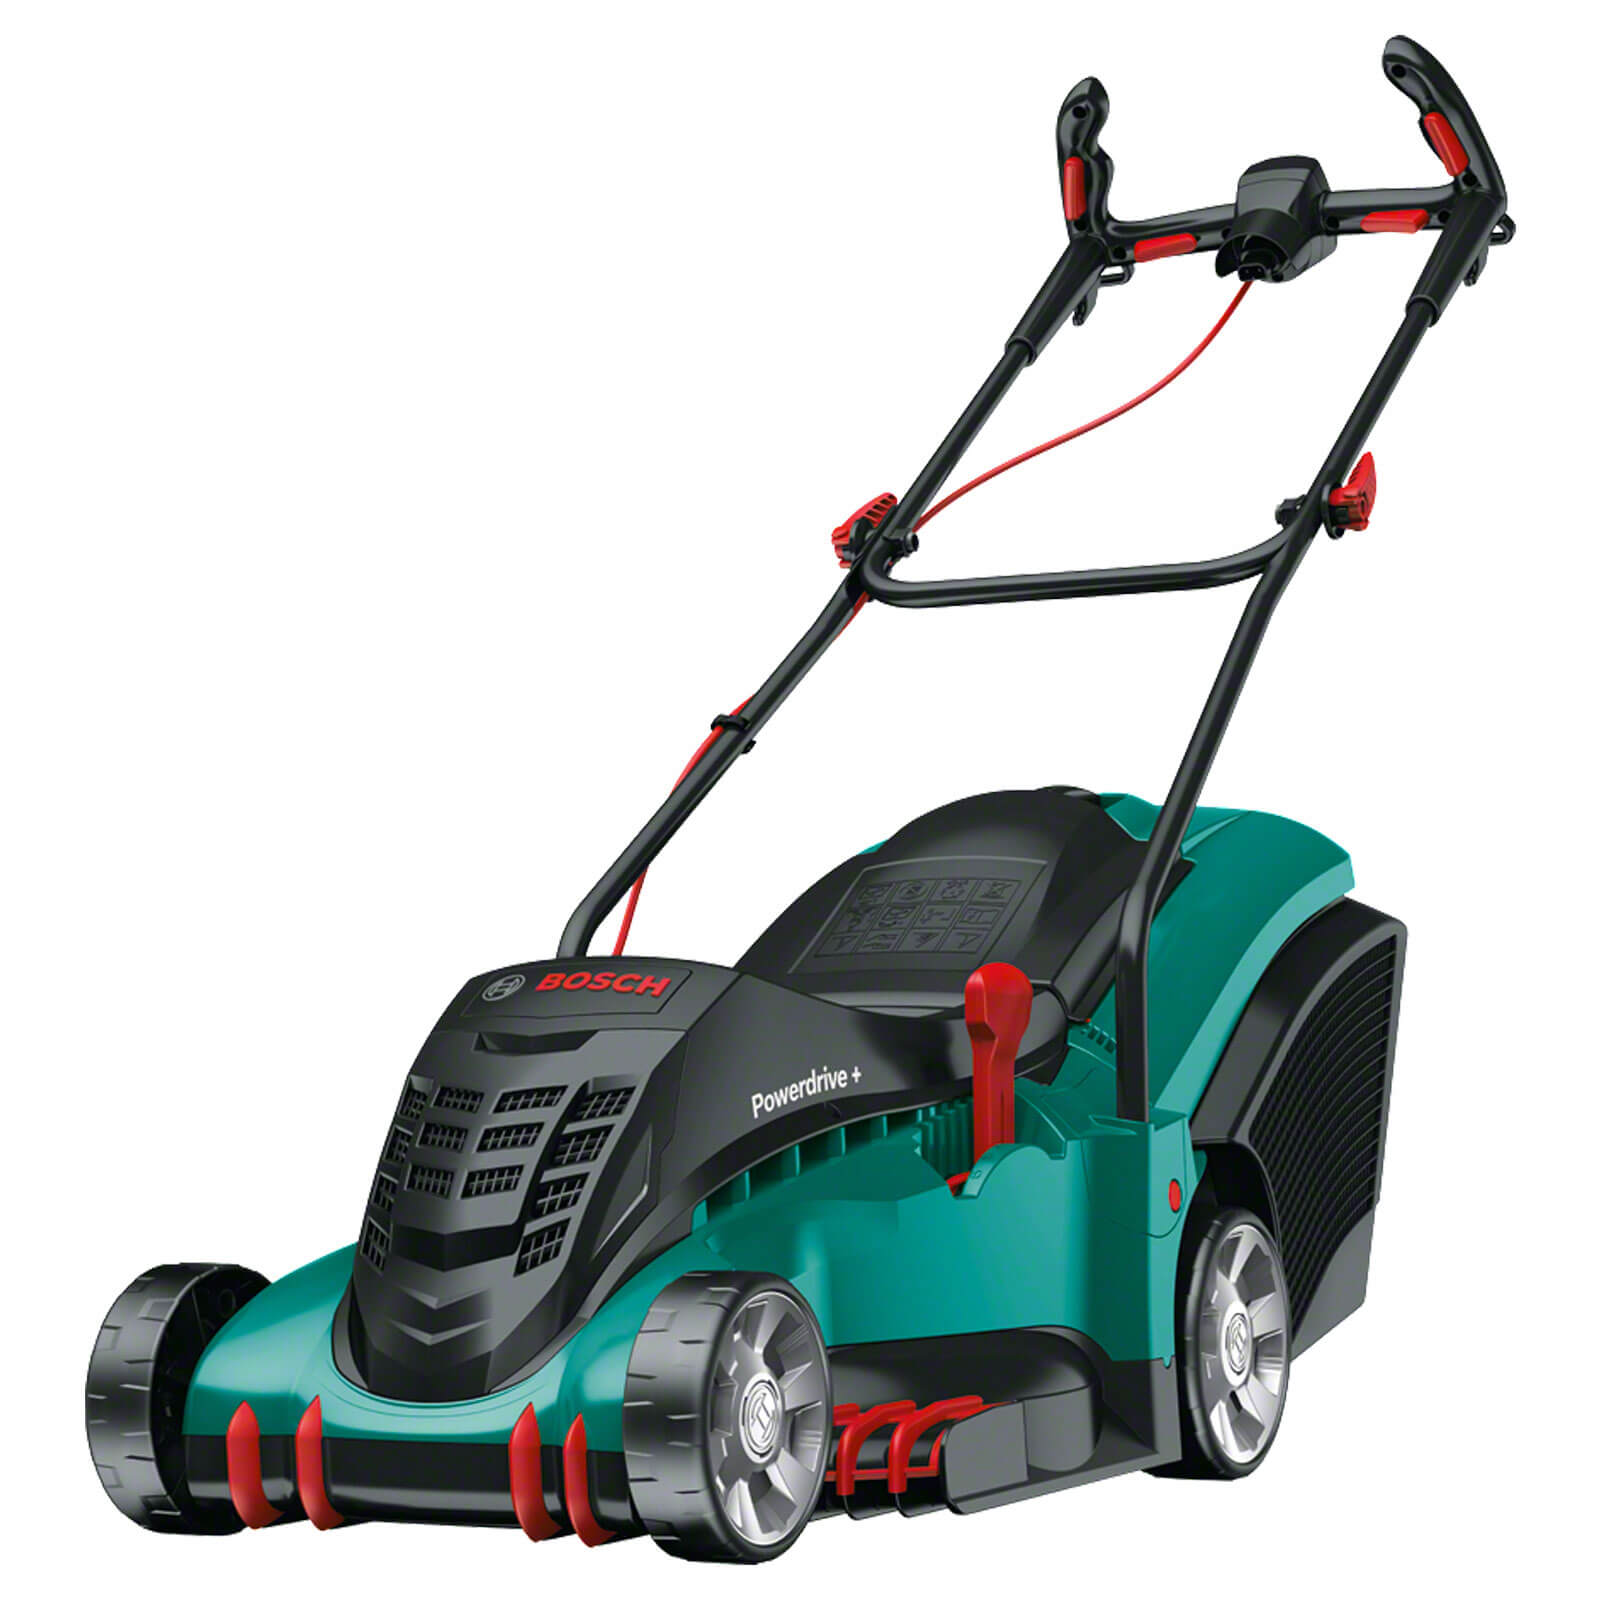 Image of Bosch ROTAK 43 ERGOFLEX Rotary Lawnmower 430mm 240v